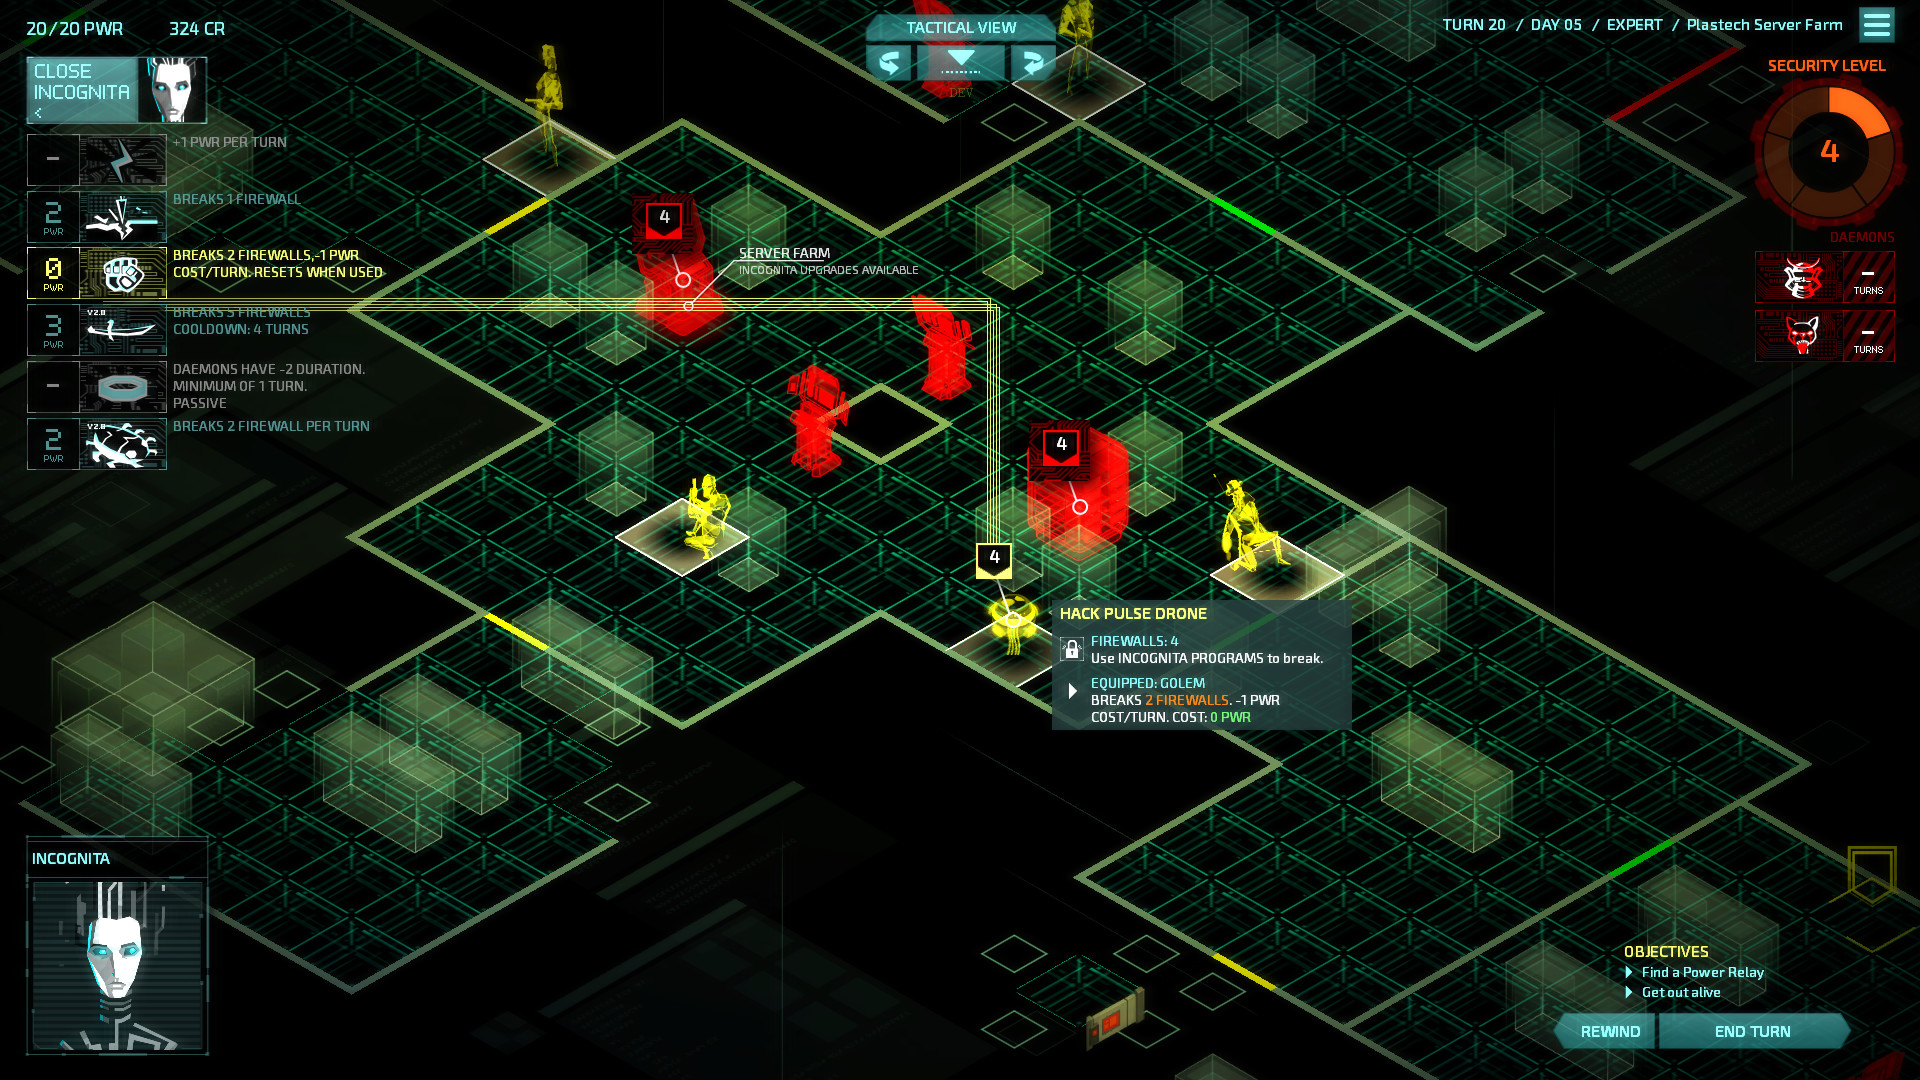 Invisible, Inc. Contingency Plan screenshot 3